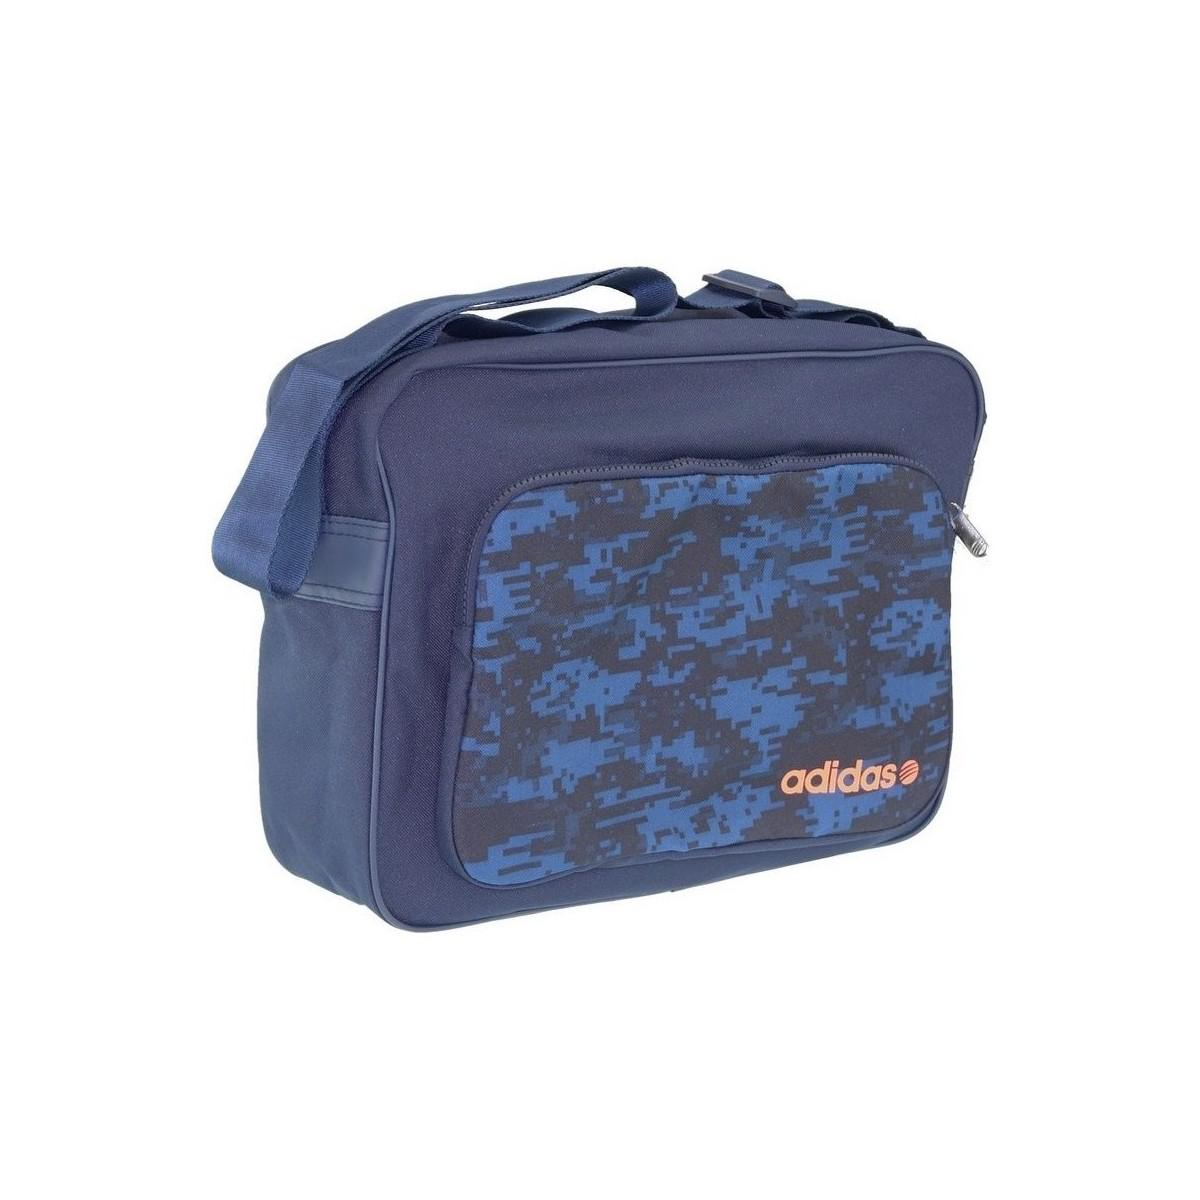 790ee20120 adidas Neo Sc Messgr Men's Messenger Bag In Multicolour in Blue for ...